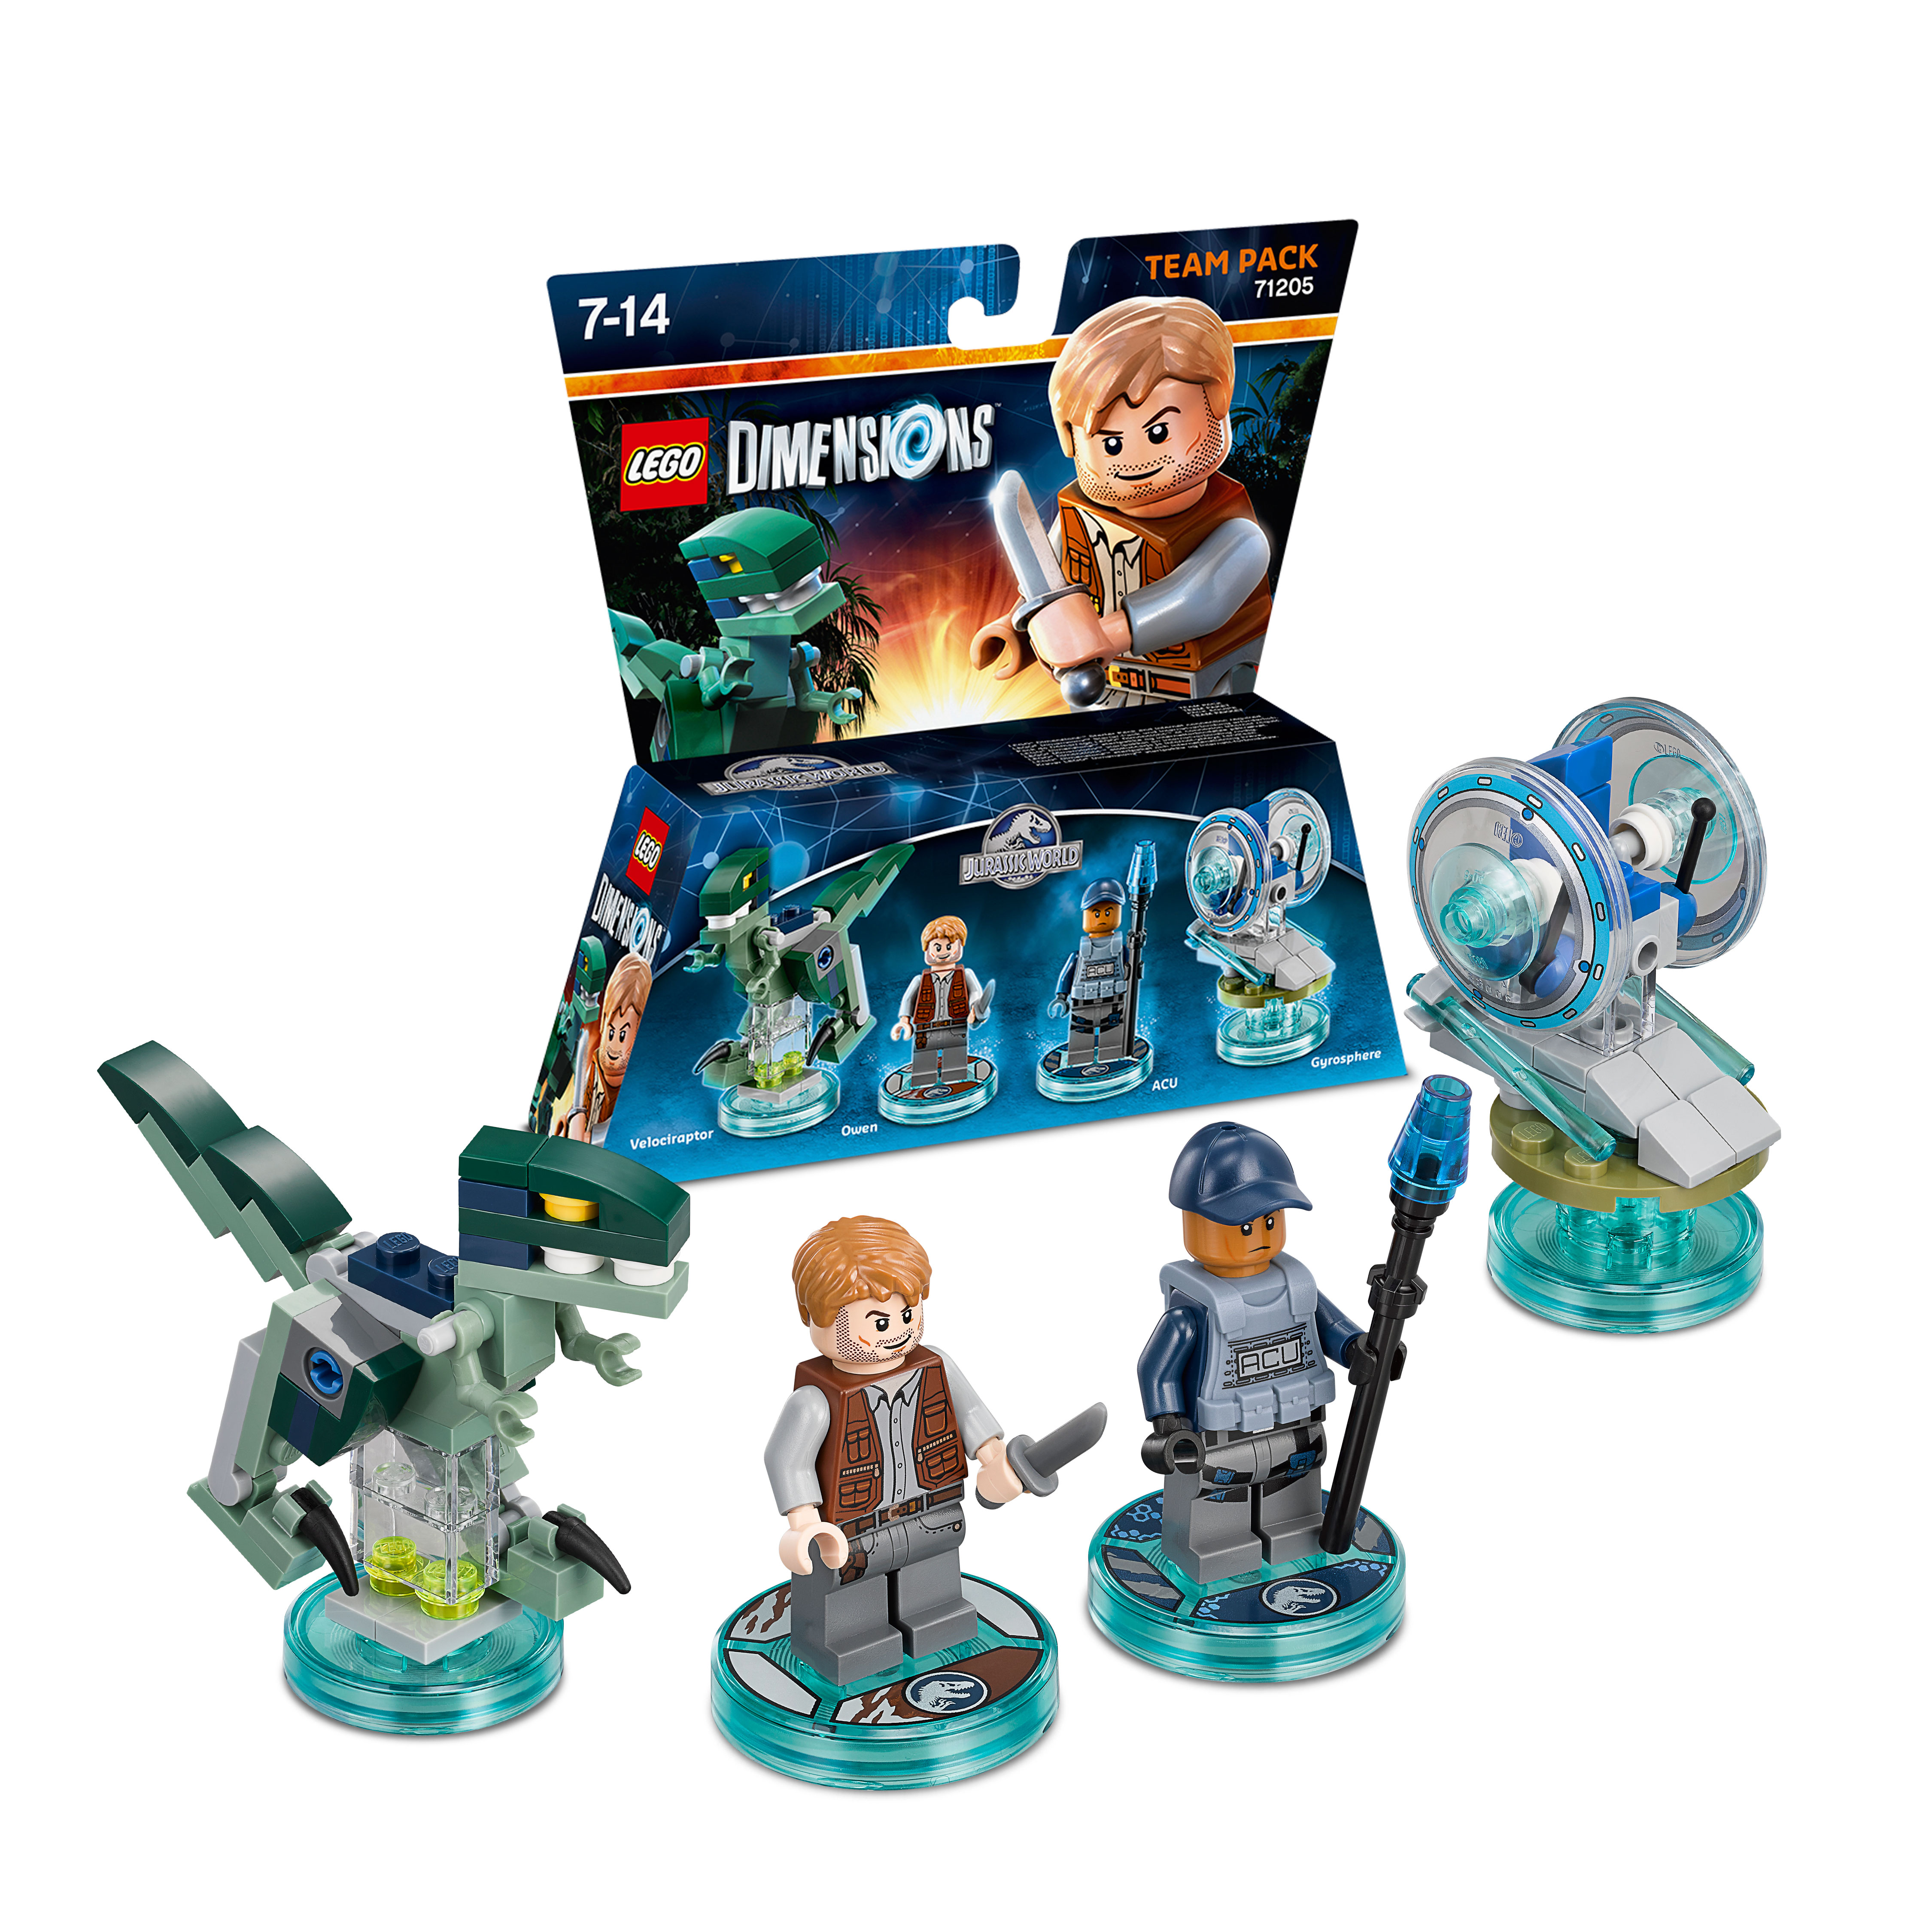 New LEGO Dimensions Details Show Off The Toy Pad And More